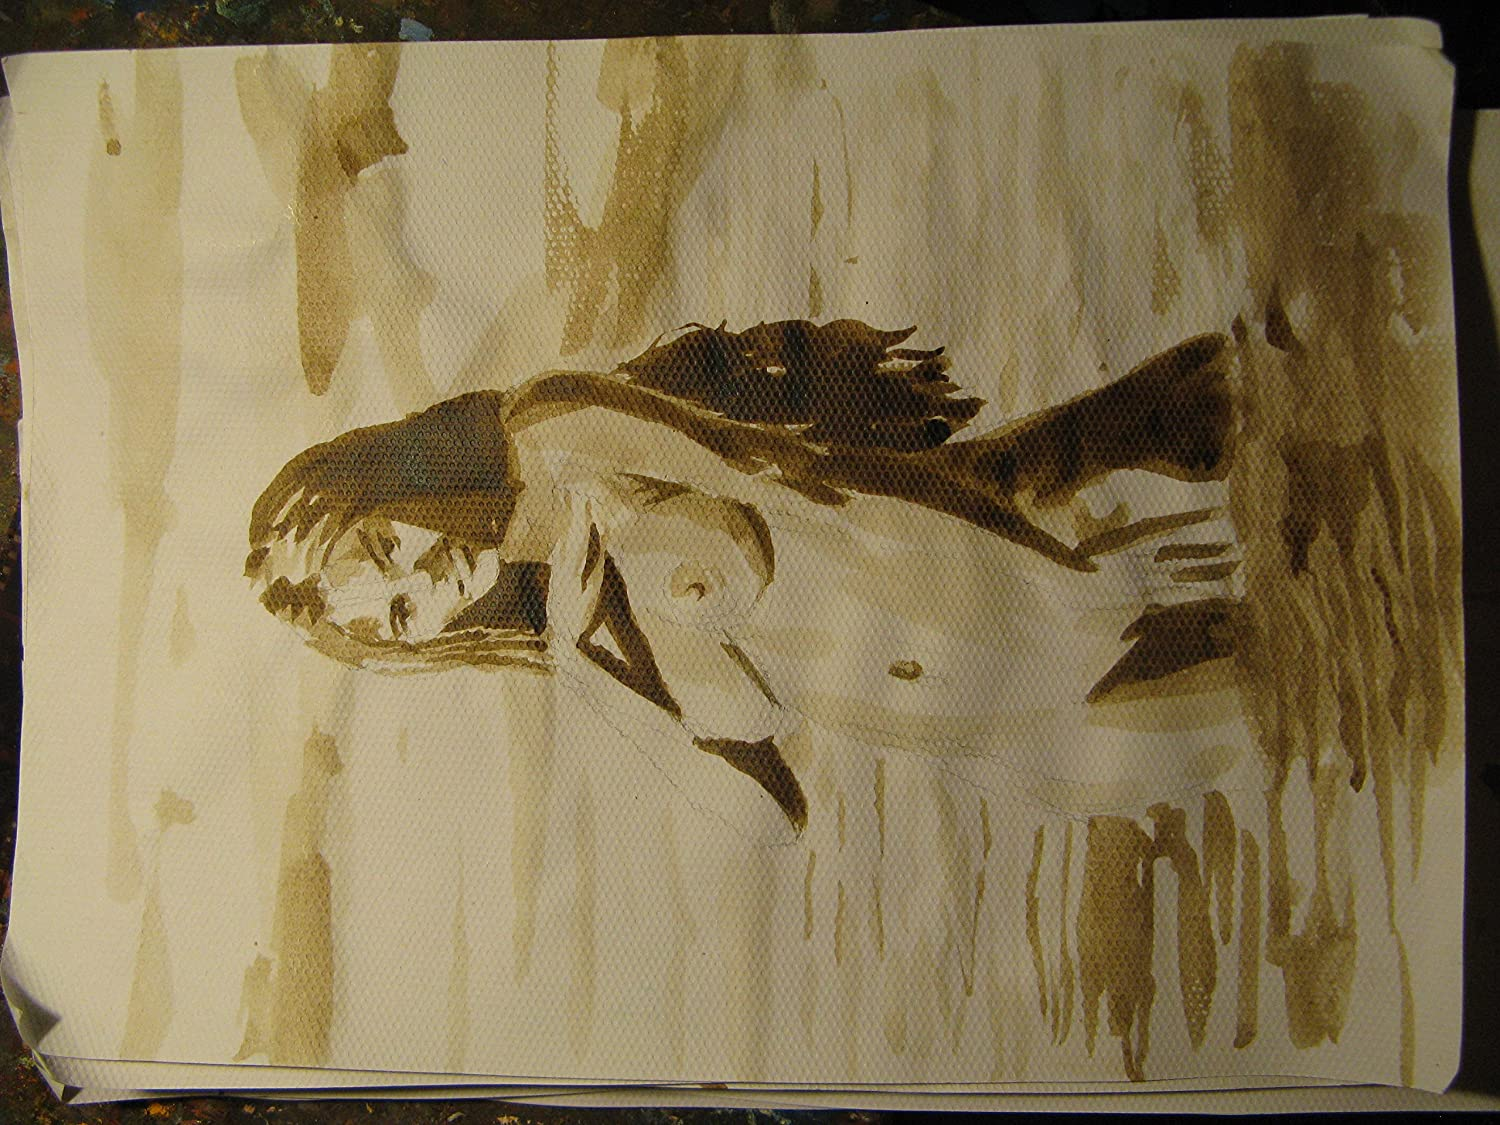 Share your drawing pictures of nude girls at the beach